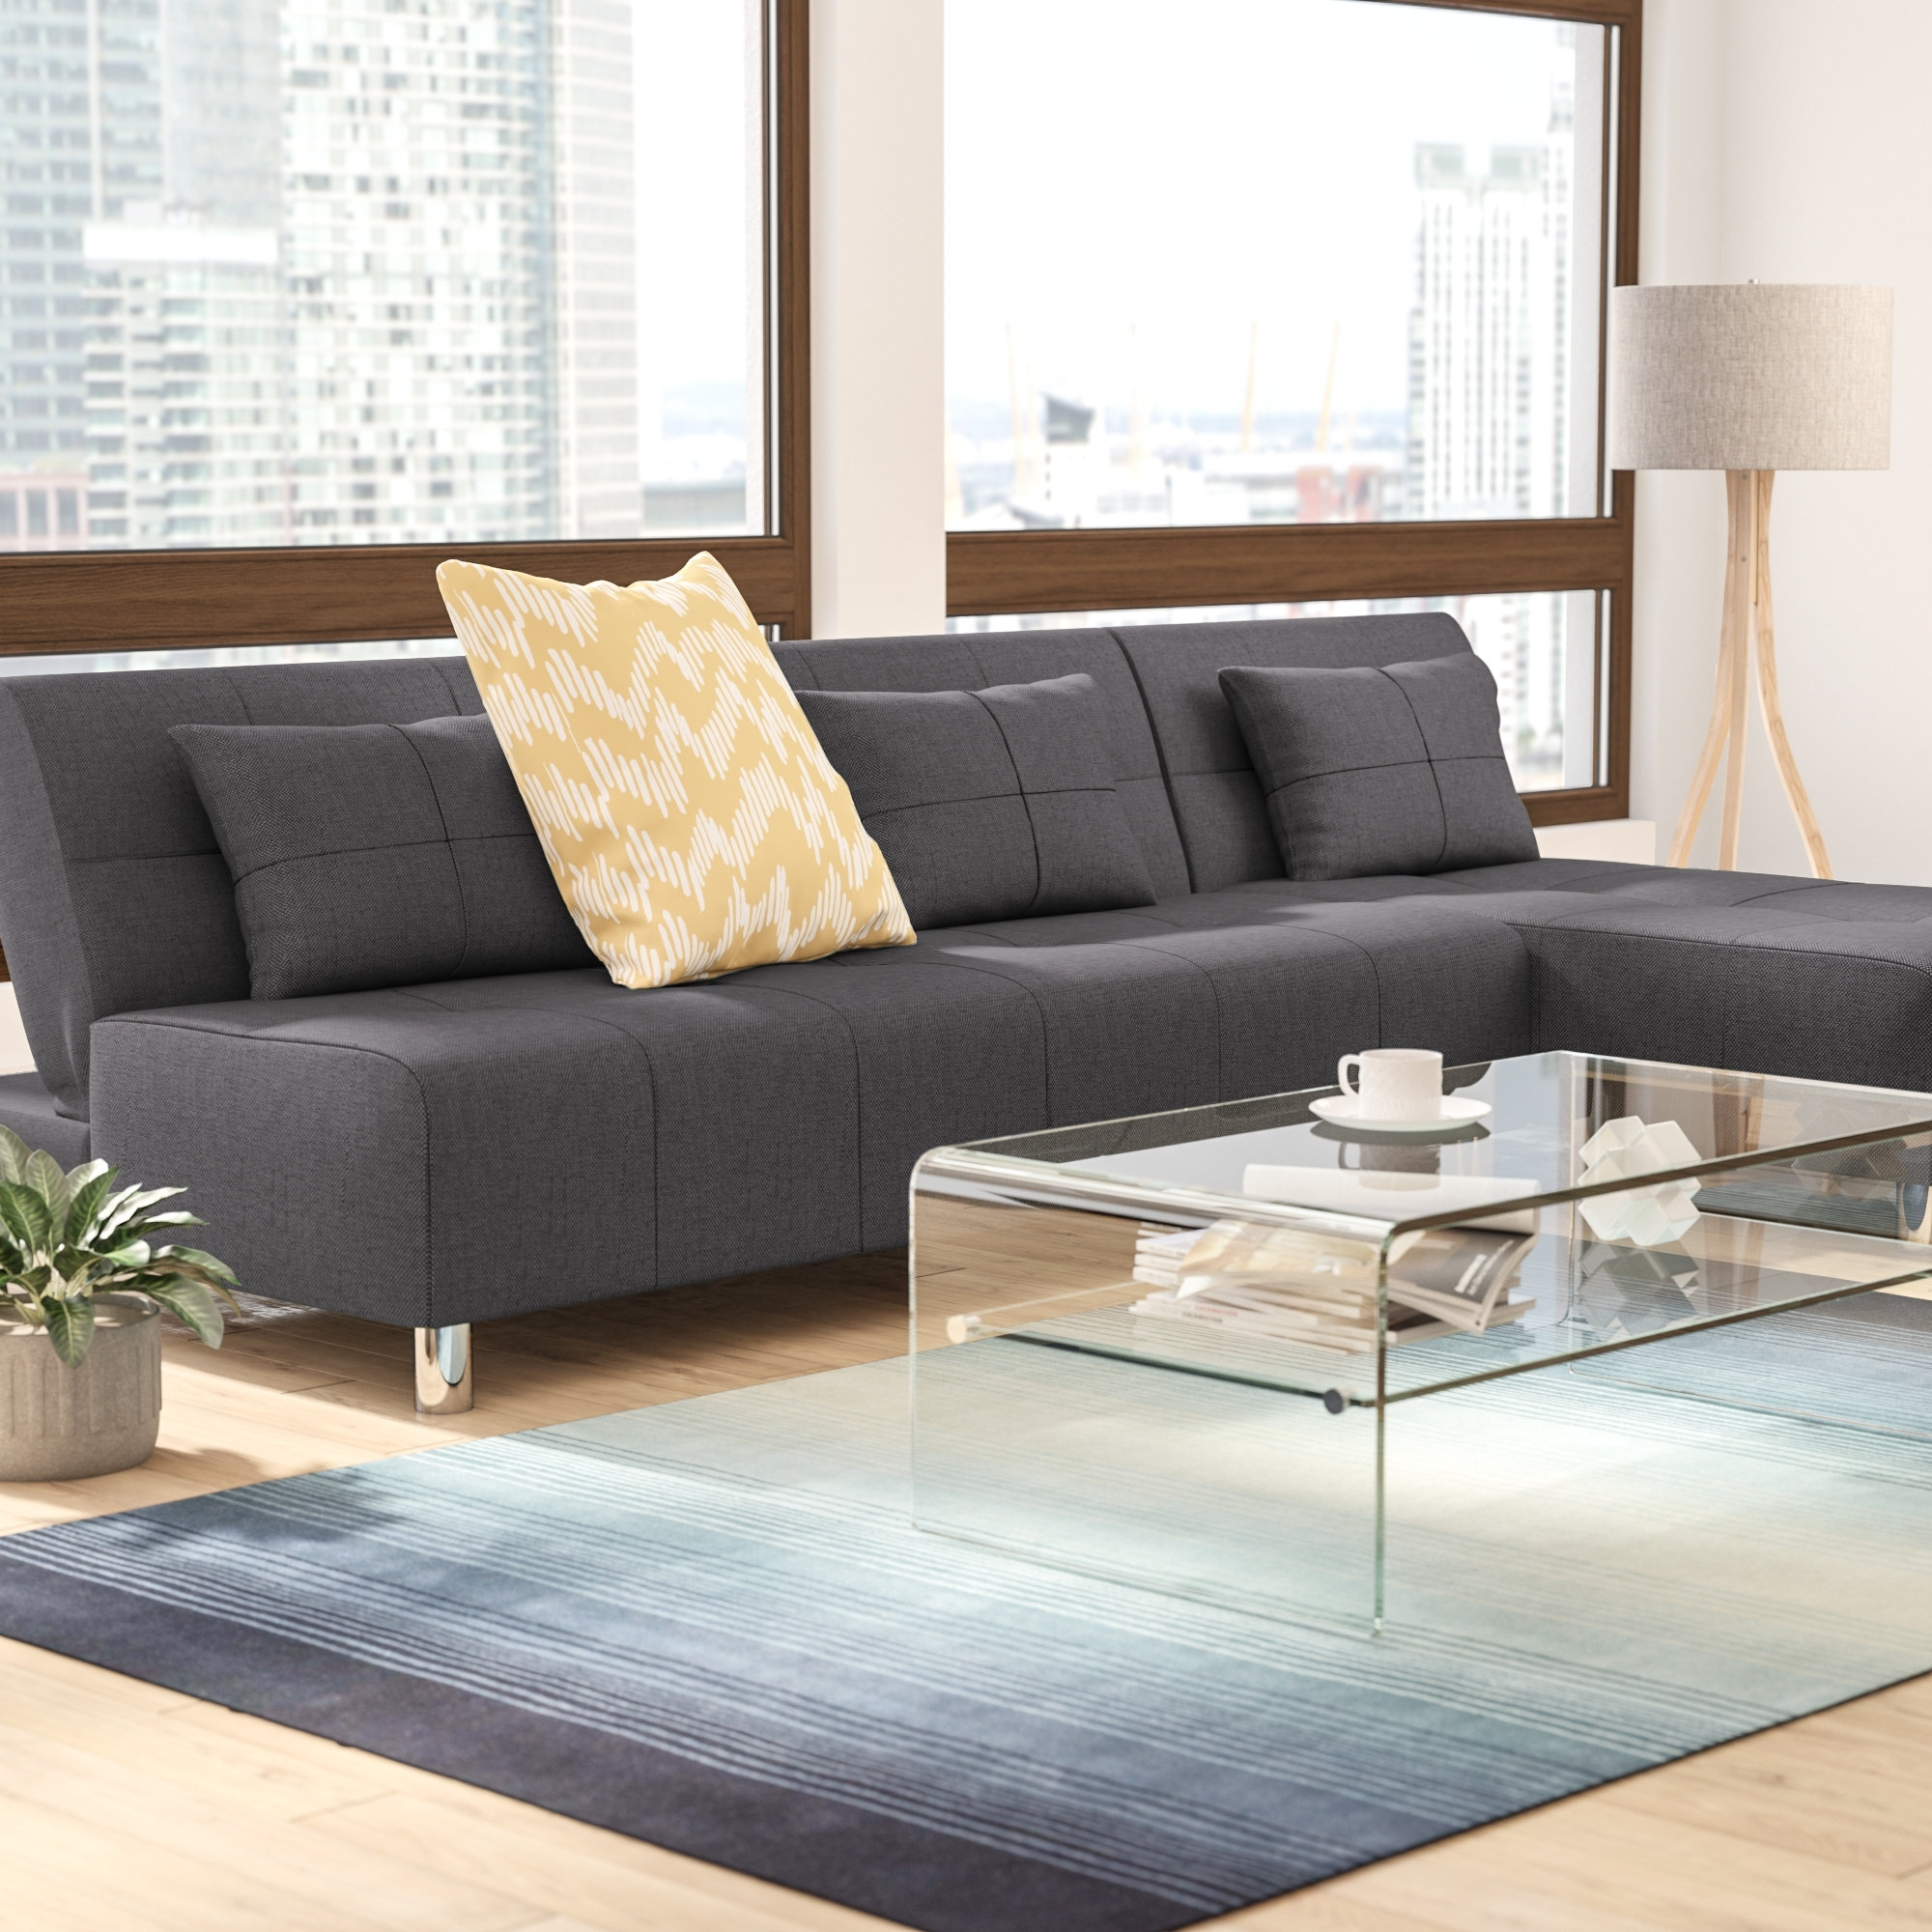 Wade Logan Ricardo Reversible Sleeper Sectional & Reviews | Wayfair Pertaining To Collins Sofa Sectionals With Reversible Chaise (View 28 of 30)